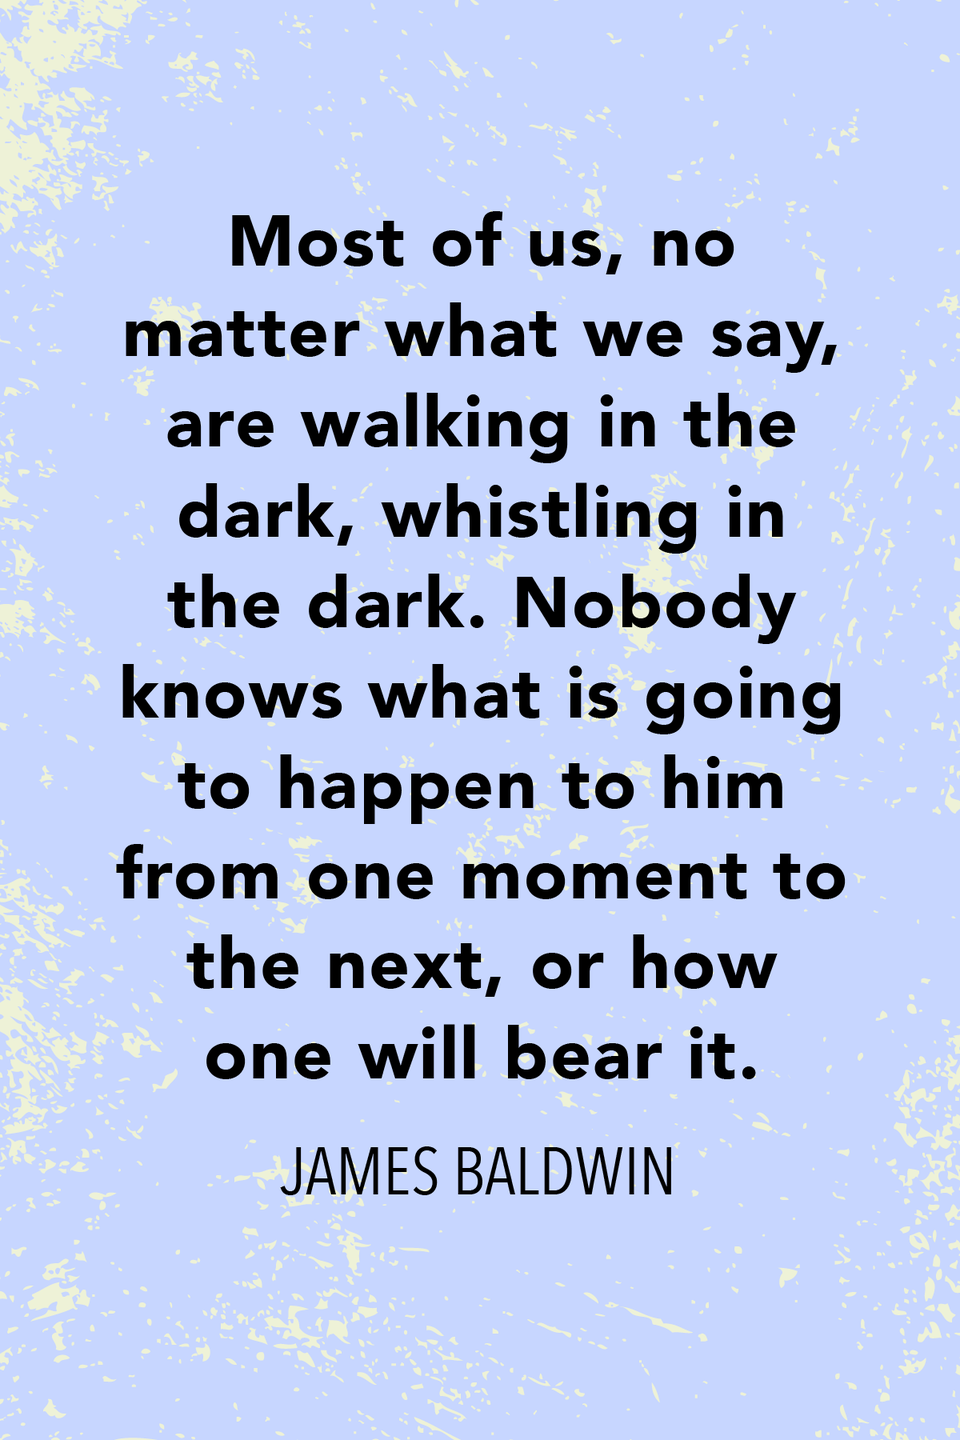 """<p>In 1961 he said, """"Most of us, no matter what we say, are walking in the dark, whistling in the dark. Nobody knows what is going to happen to him from one moment to the next, or how one will bear it."""" </p>"""